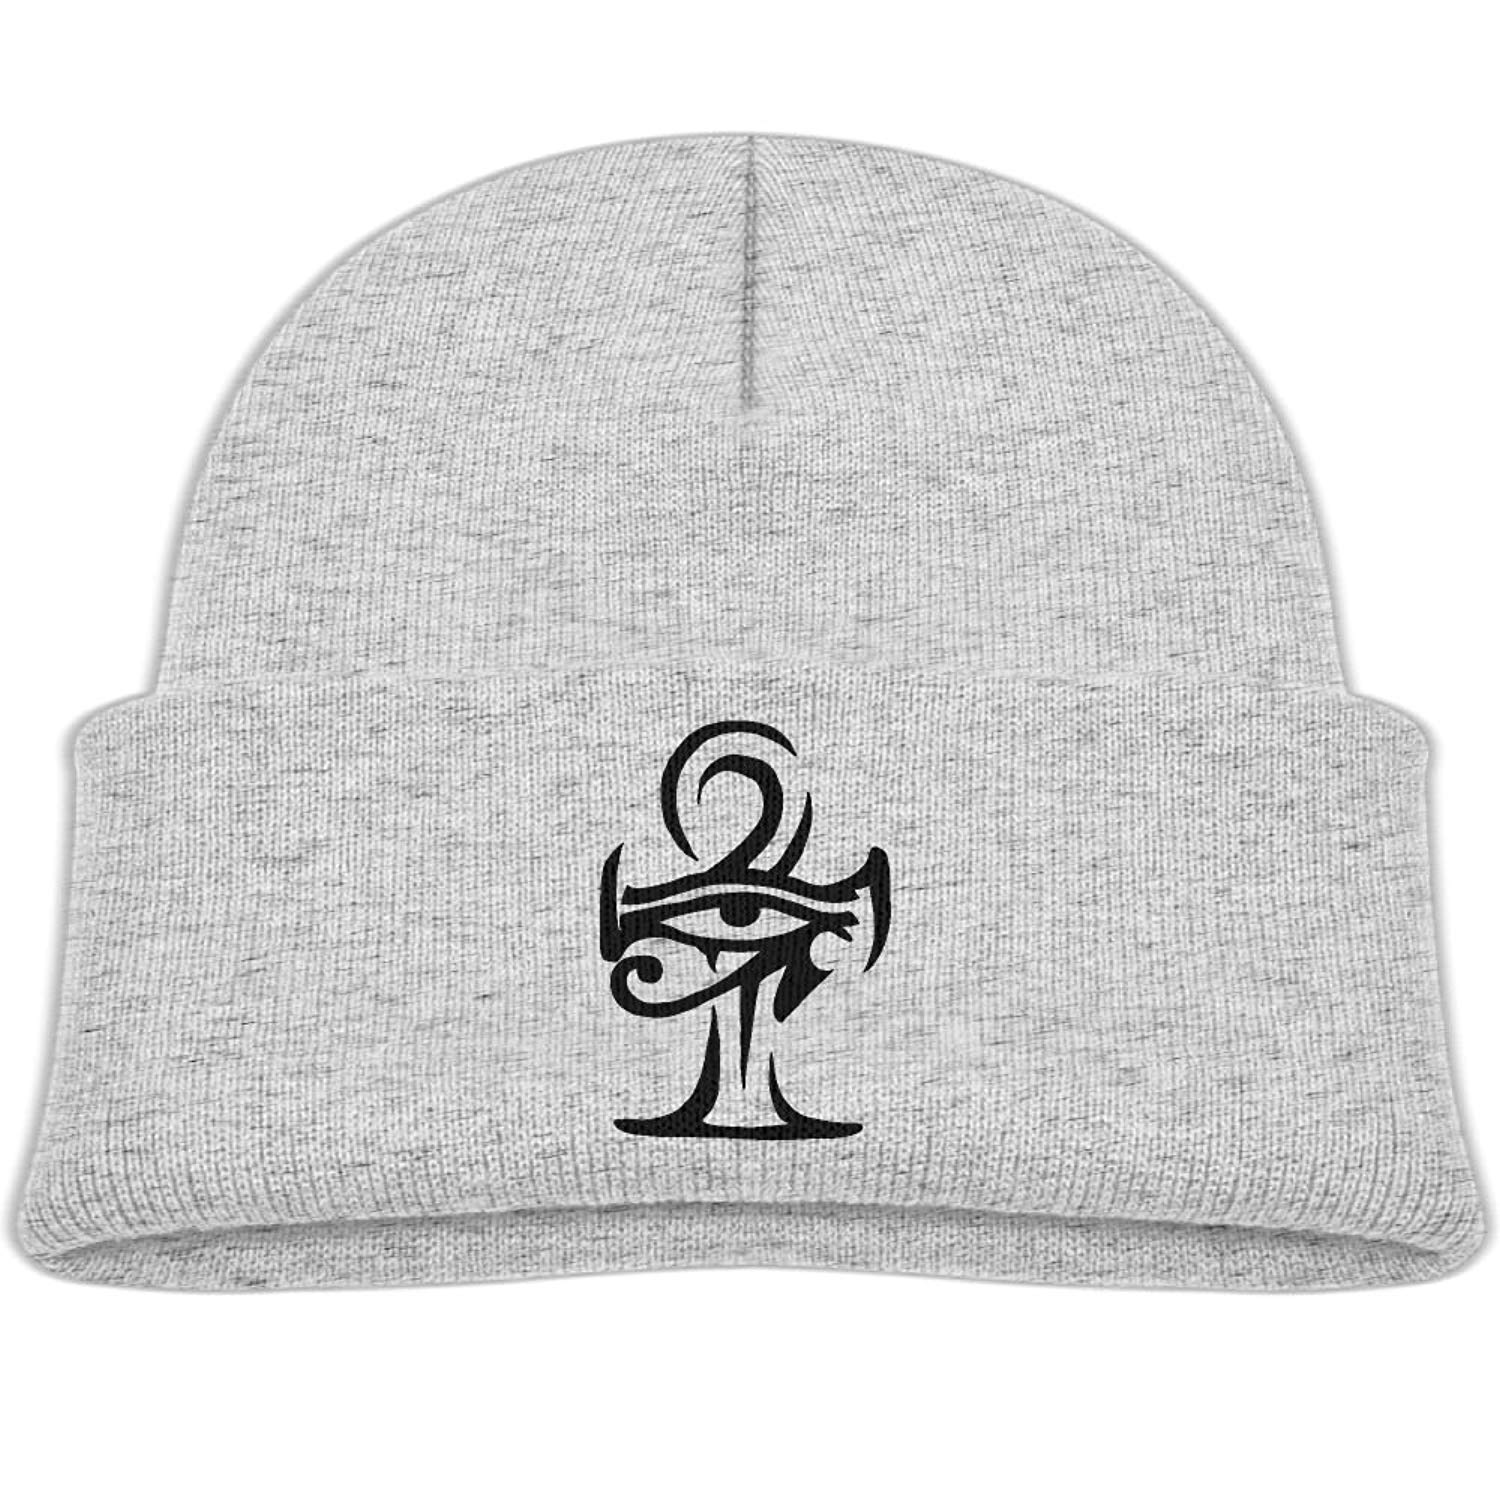 4eb47d51a98 Get Quotations · Raining Sunlight Kids Fashion Horus Eye With Ankh Tribal  Tattoo Casual Flexible Winter Knit Hats